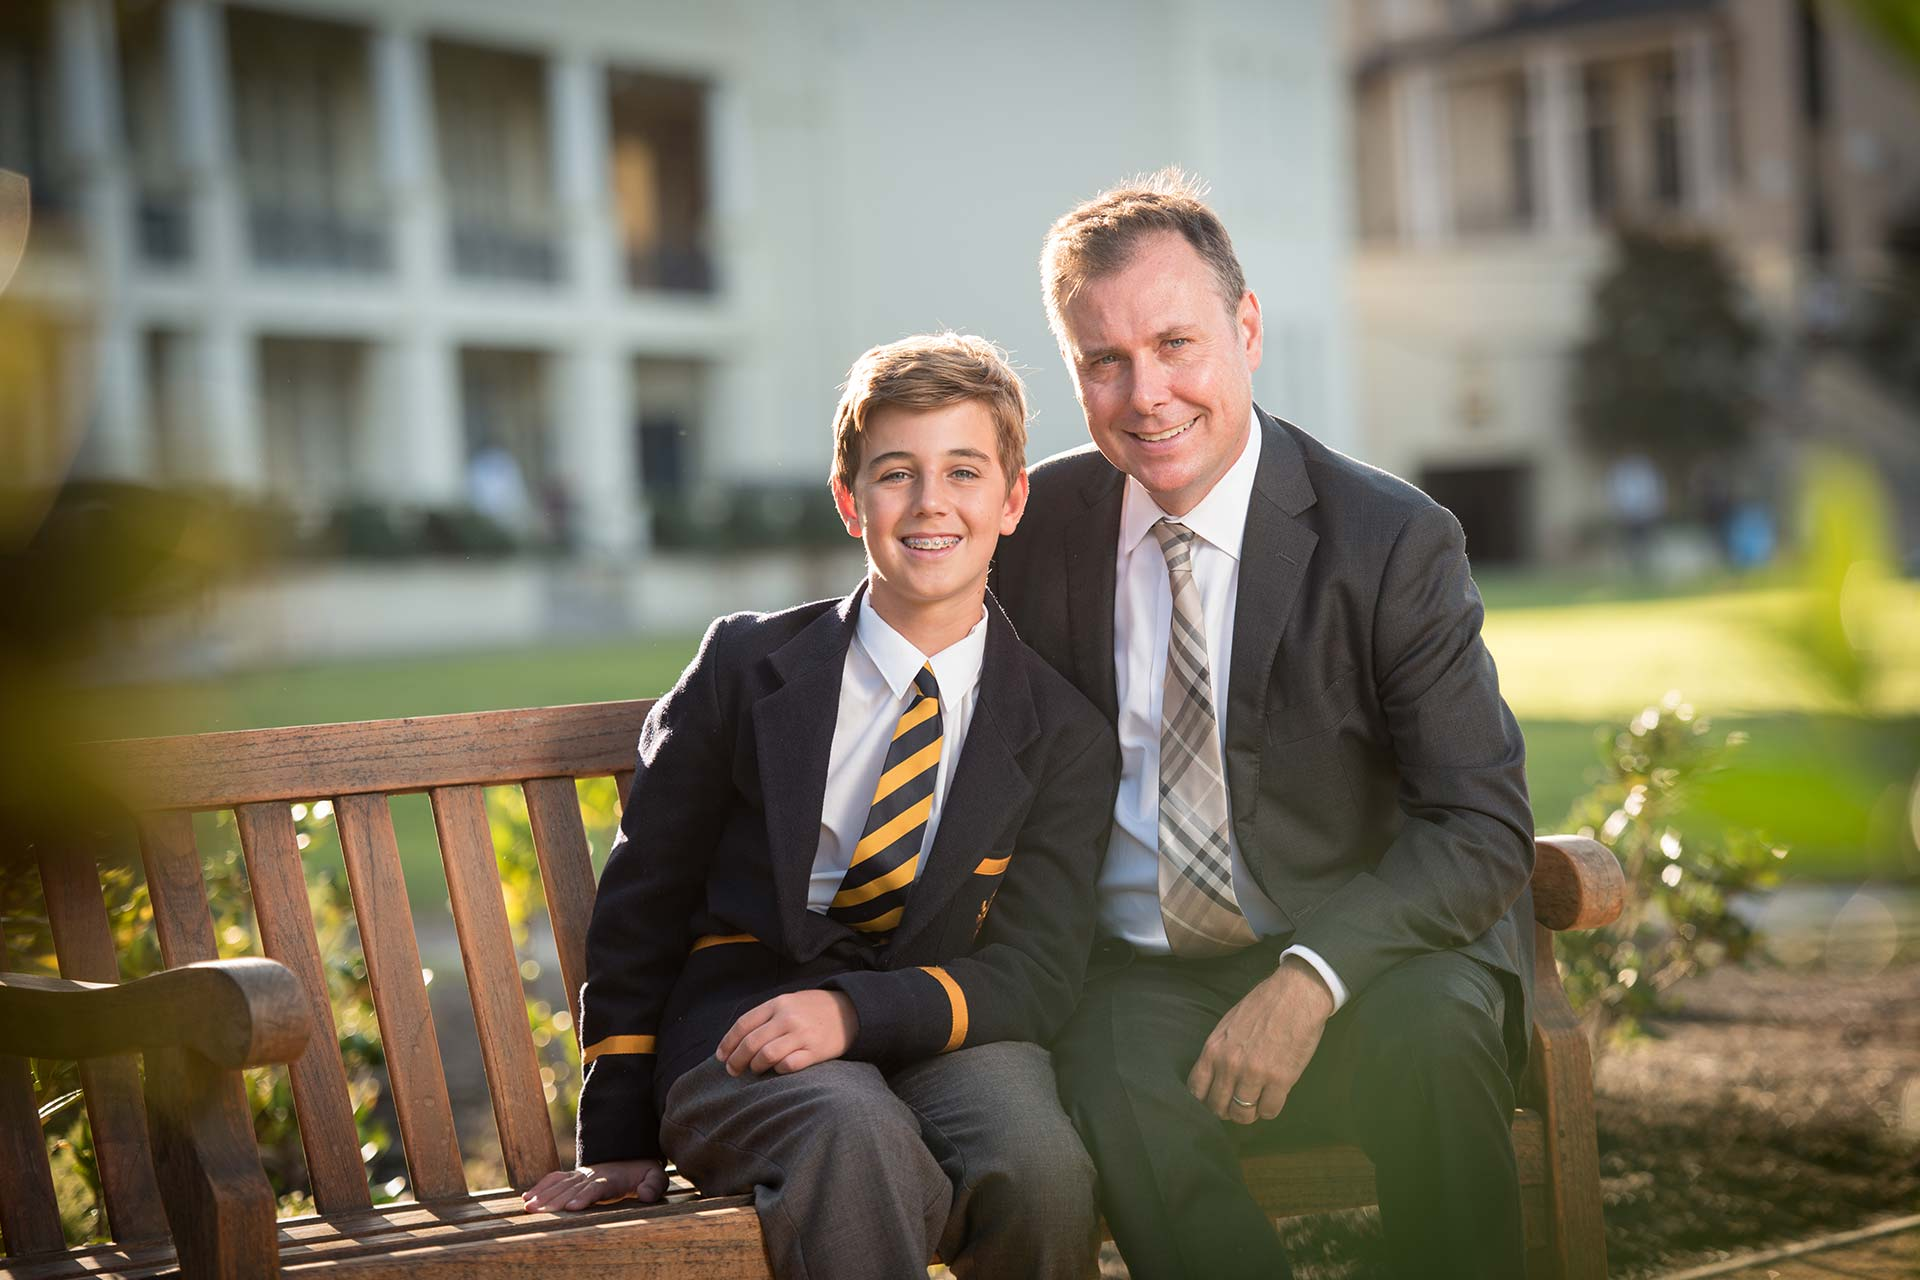 Andrew and William Patterson